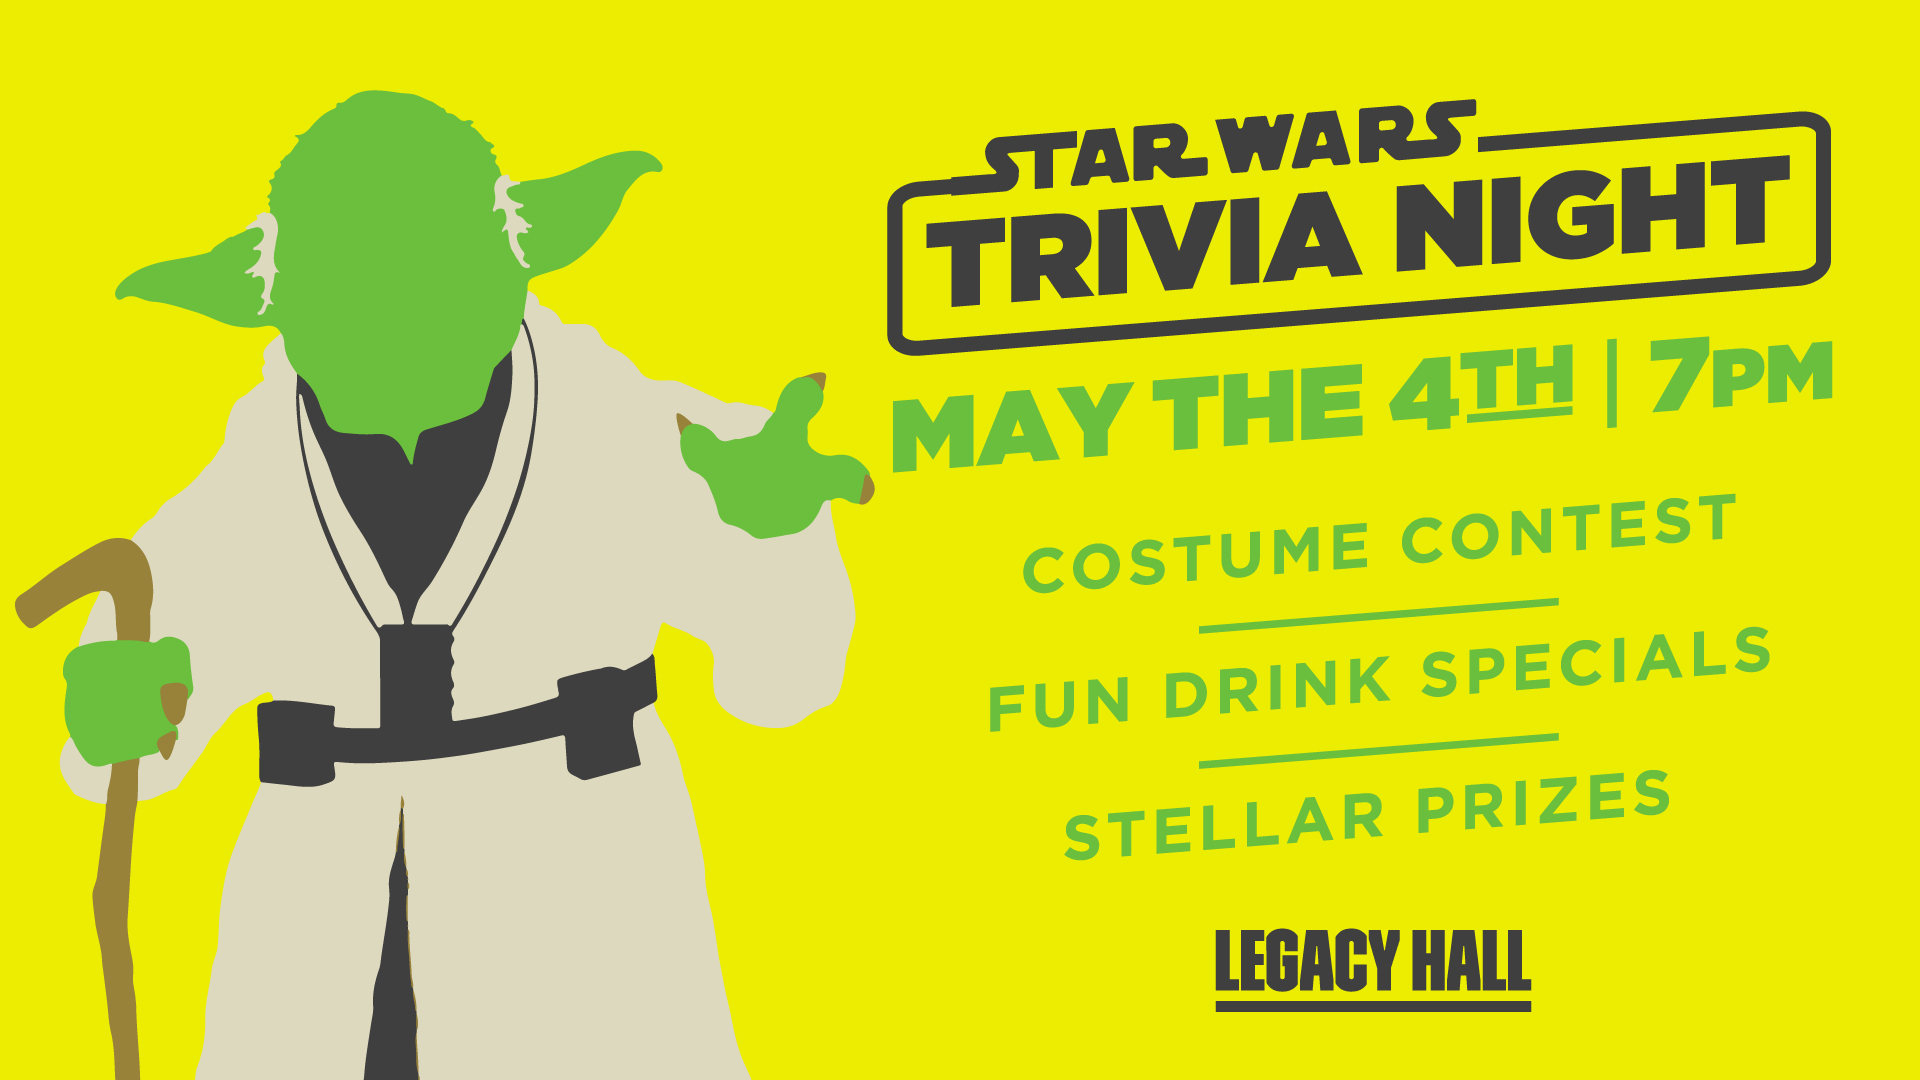 Promo image of Star Wars Trivia